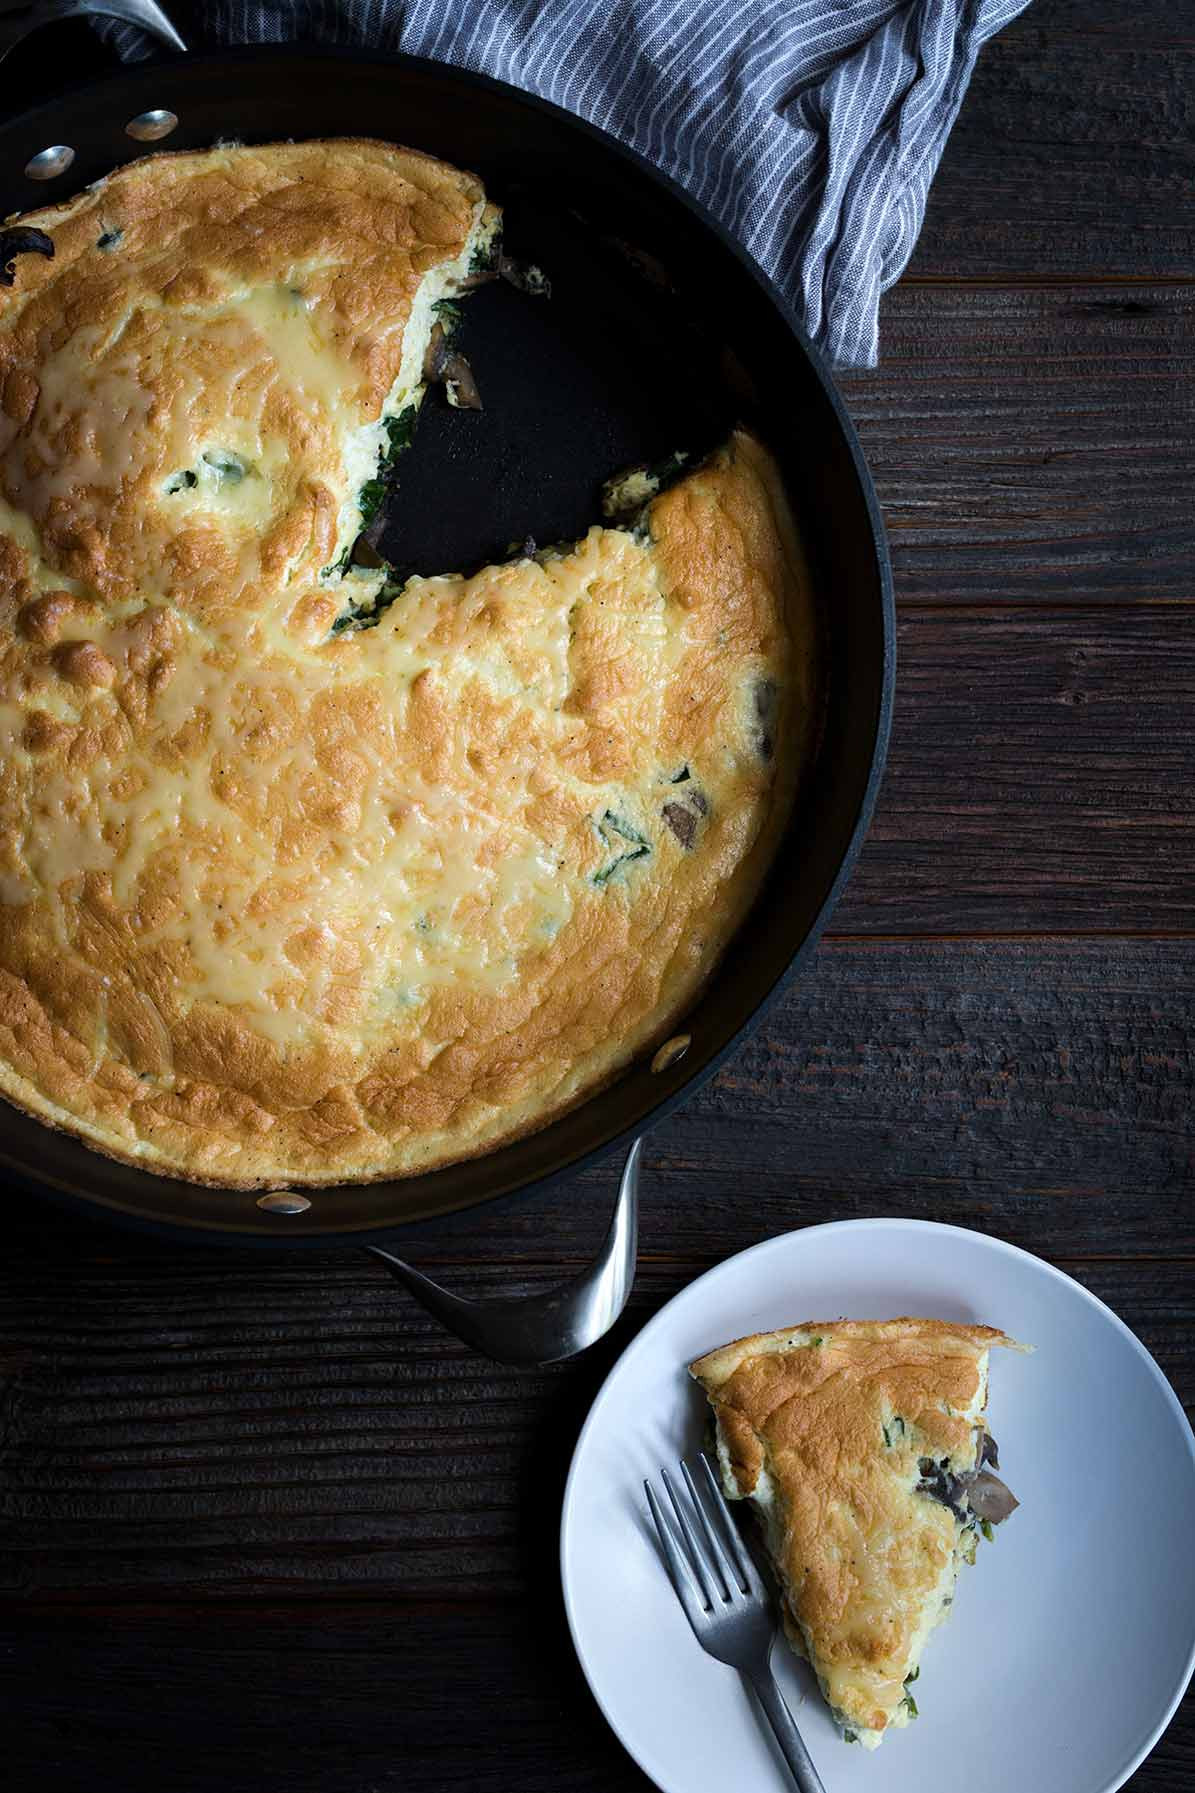 A slice of spinach frittata on a plate.